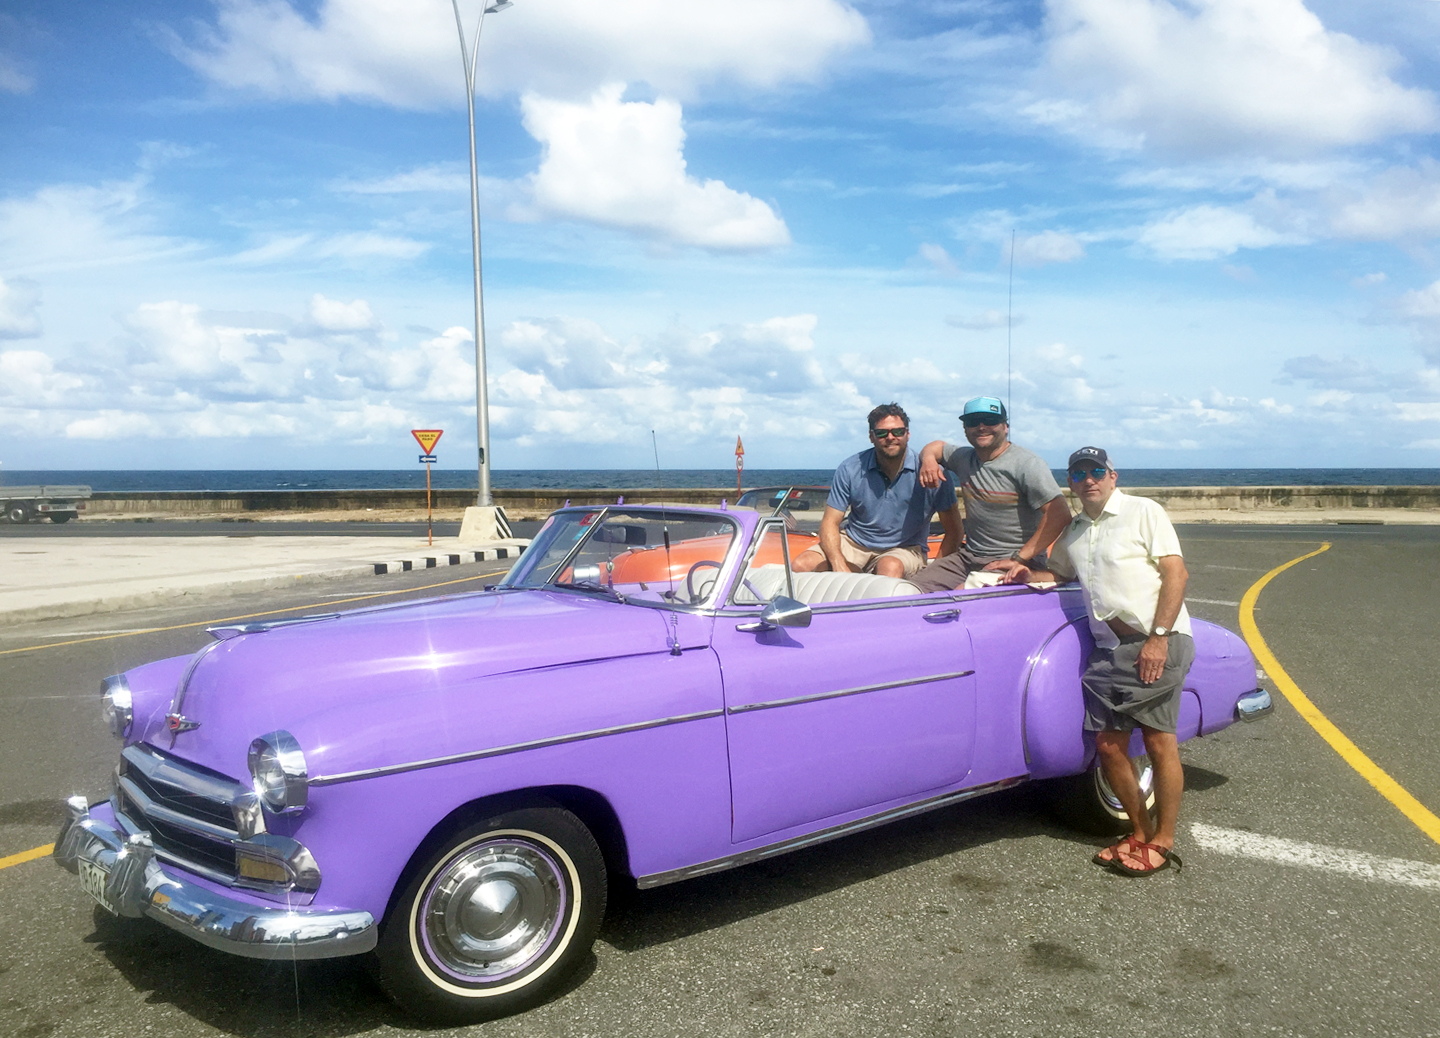 A purple classic convertible American car on the Malecon in Havana, Cuba